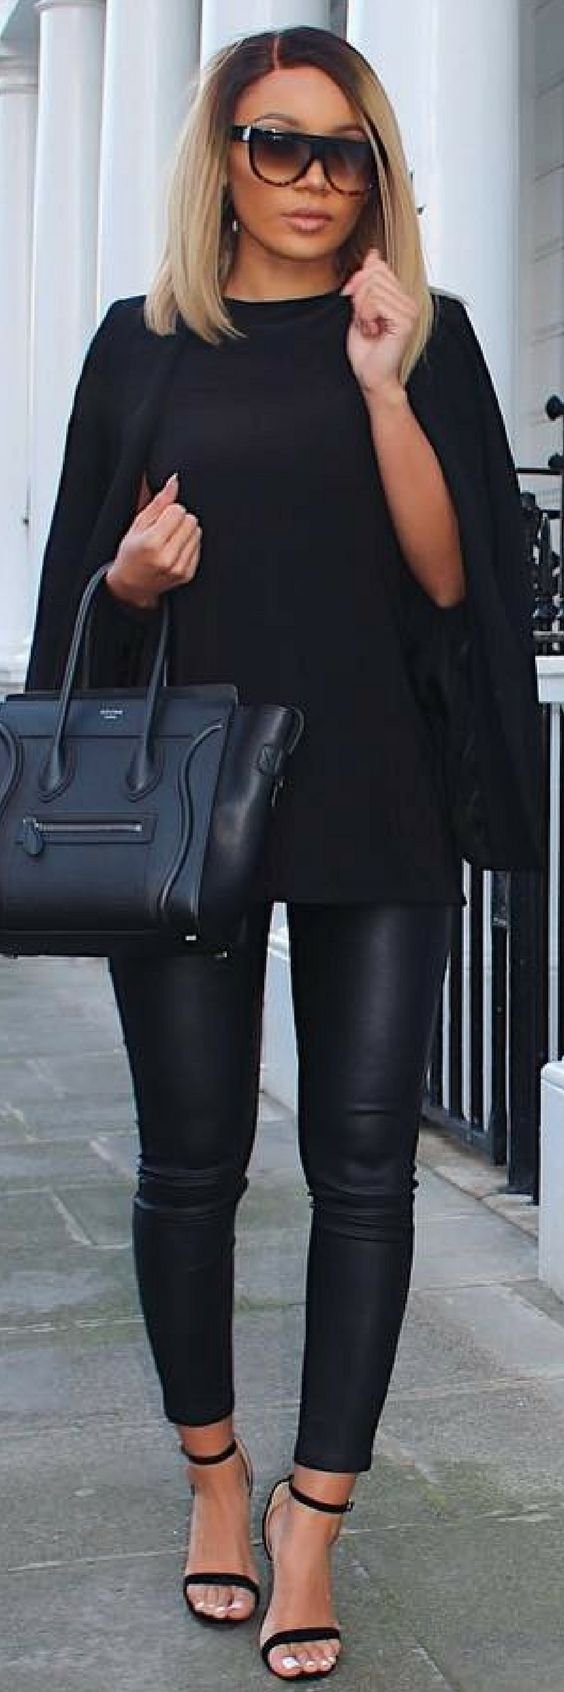 7 Of The Most Astonishing Winter Outfits You'll Love https://ecstasymodels.blog/2017/12/10/7-astonishing-winter-outfits/